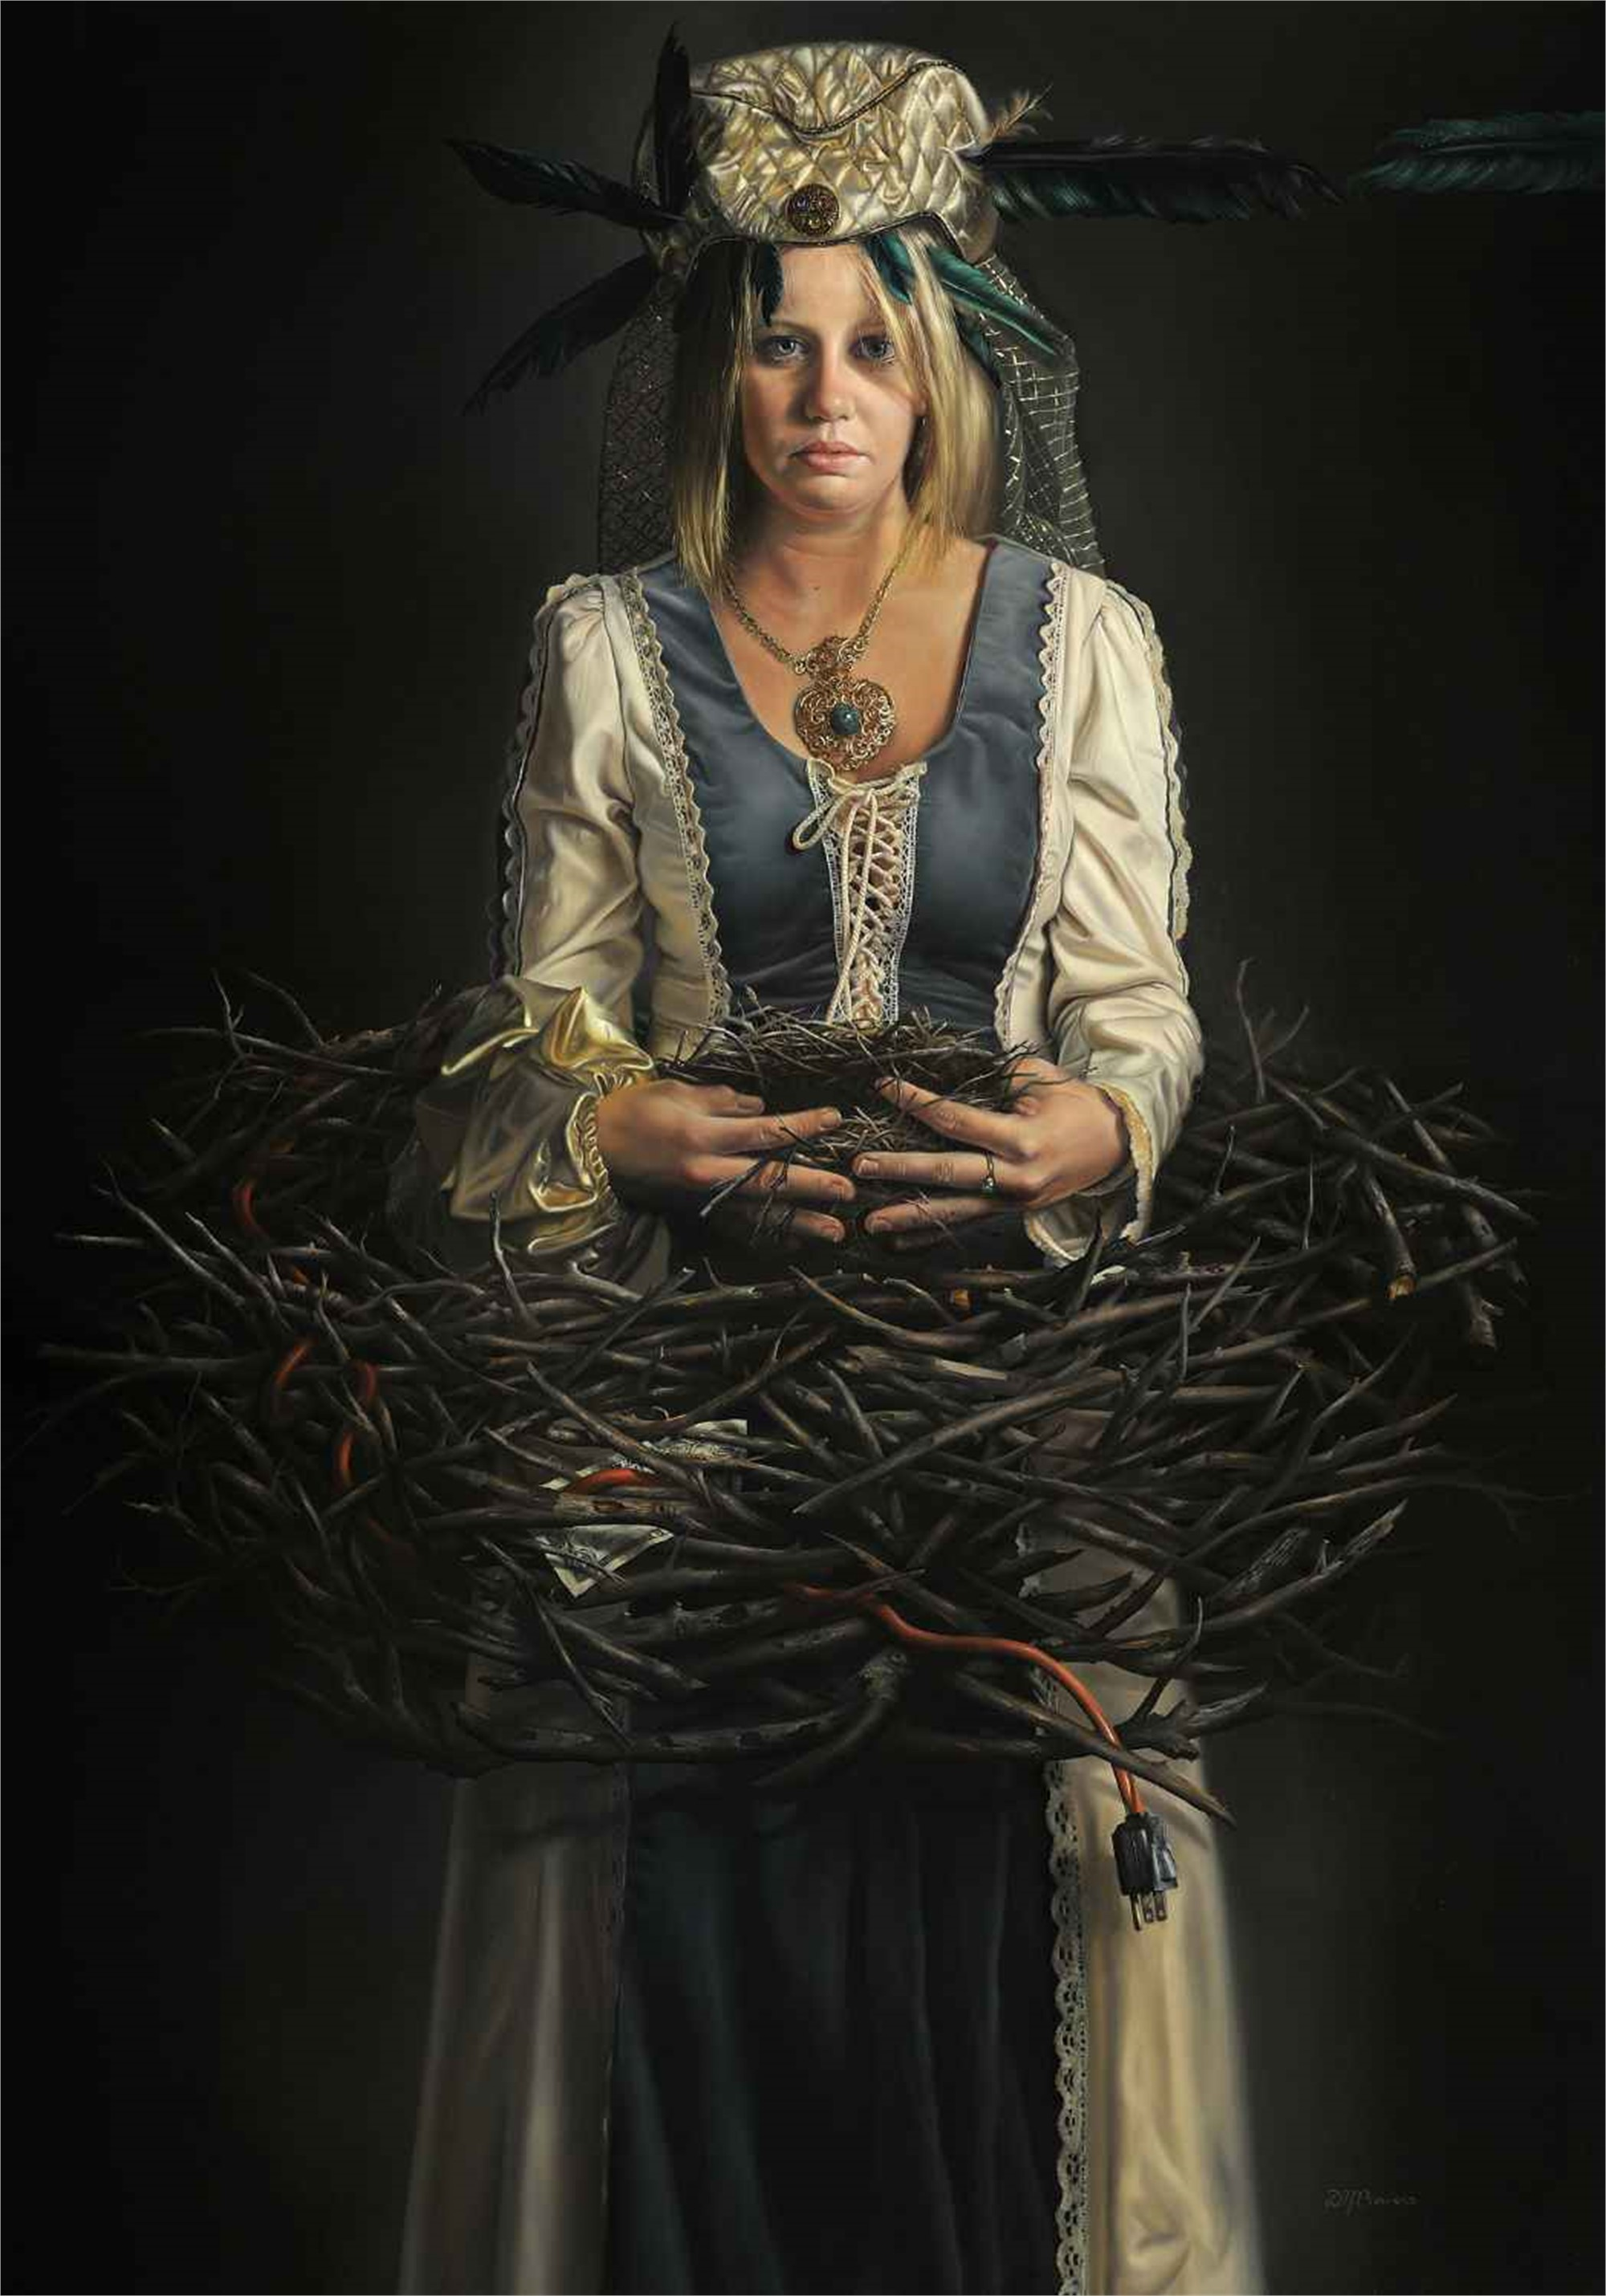 The Eternal Touch by David Michael Bowers